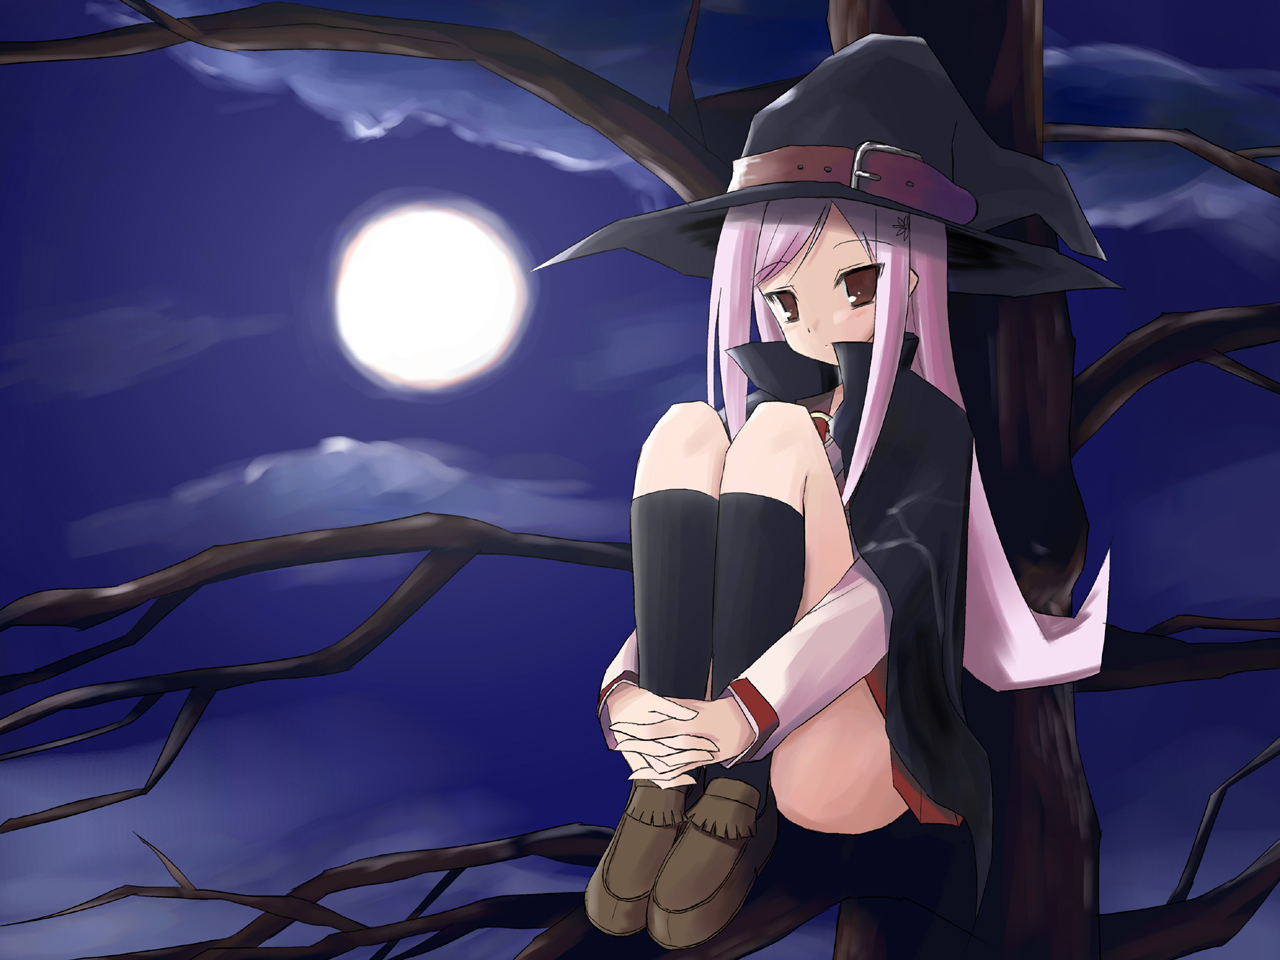 aquaplus leaf lucy_maria_misora to_heart to_heart_2 witch